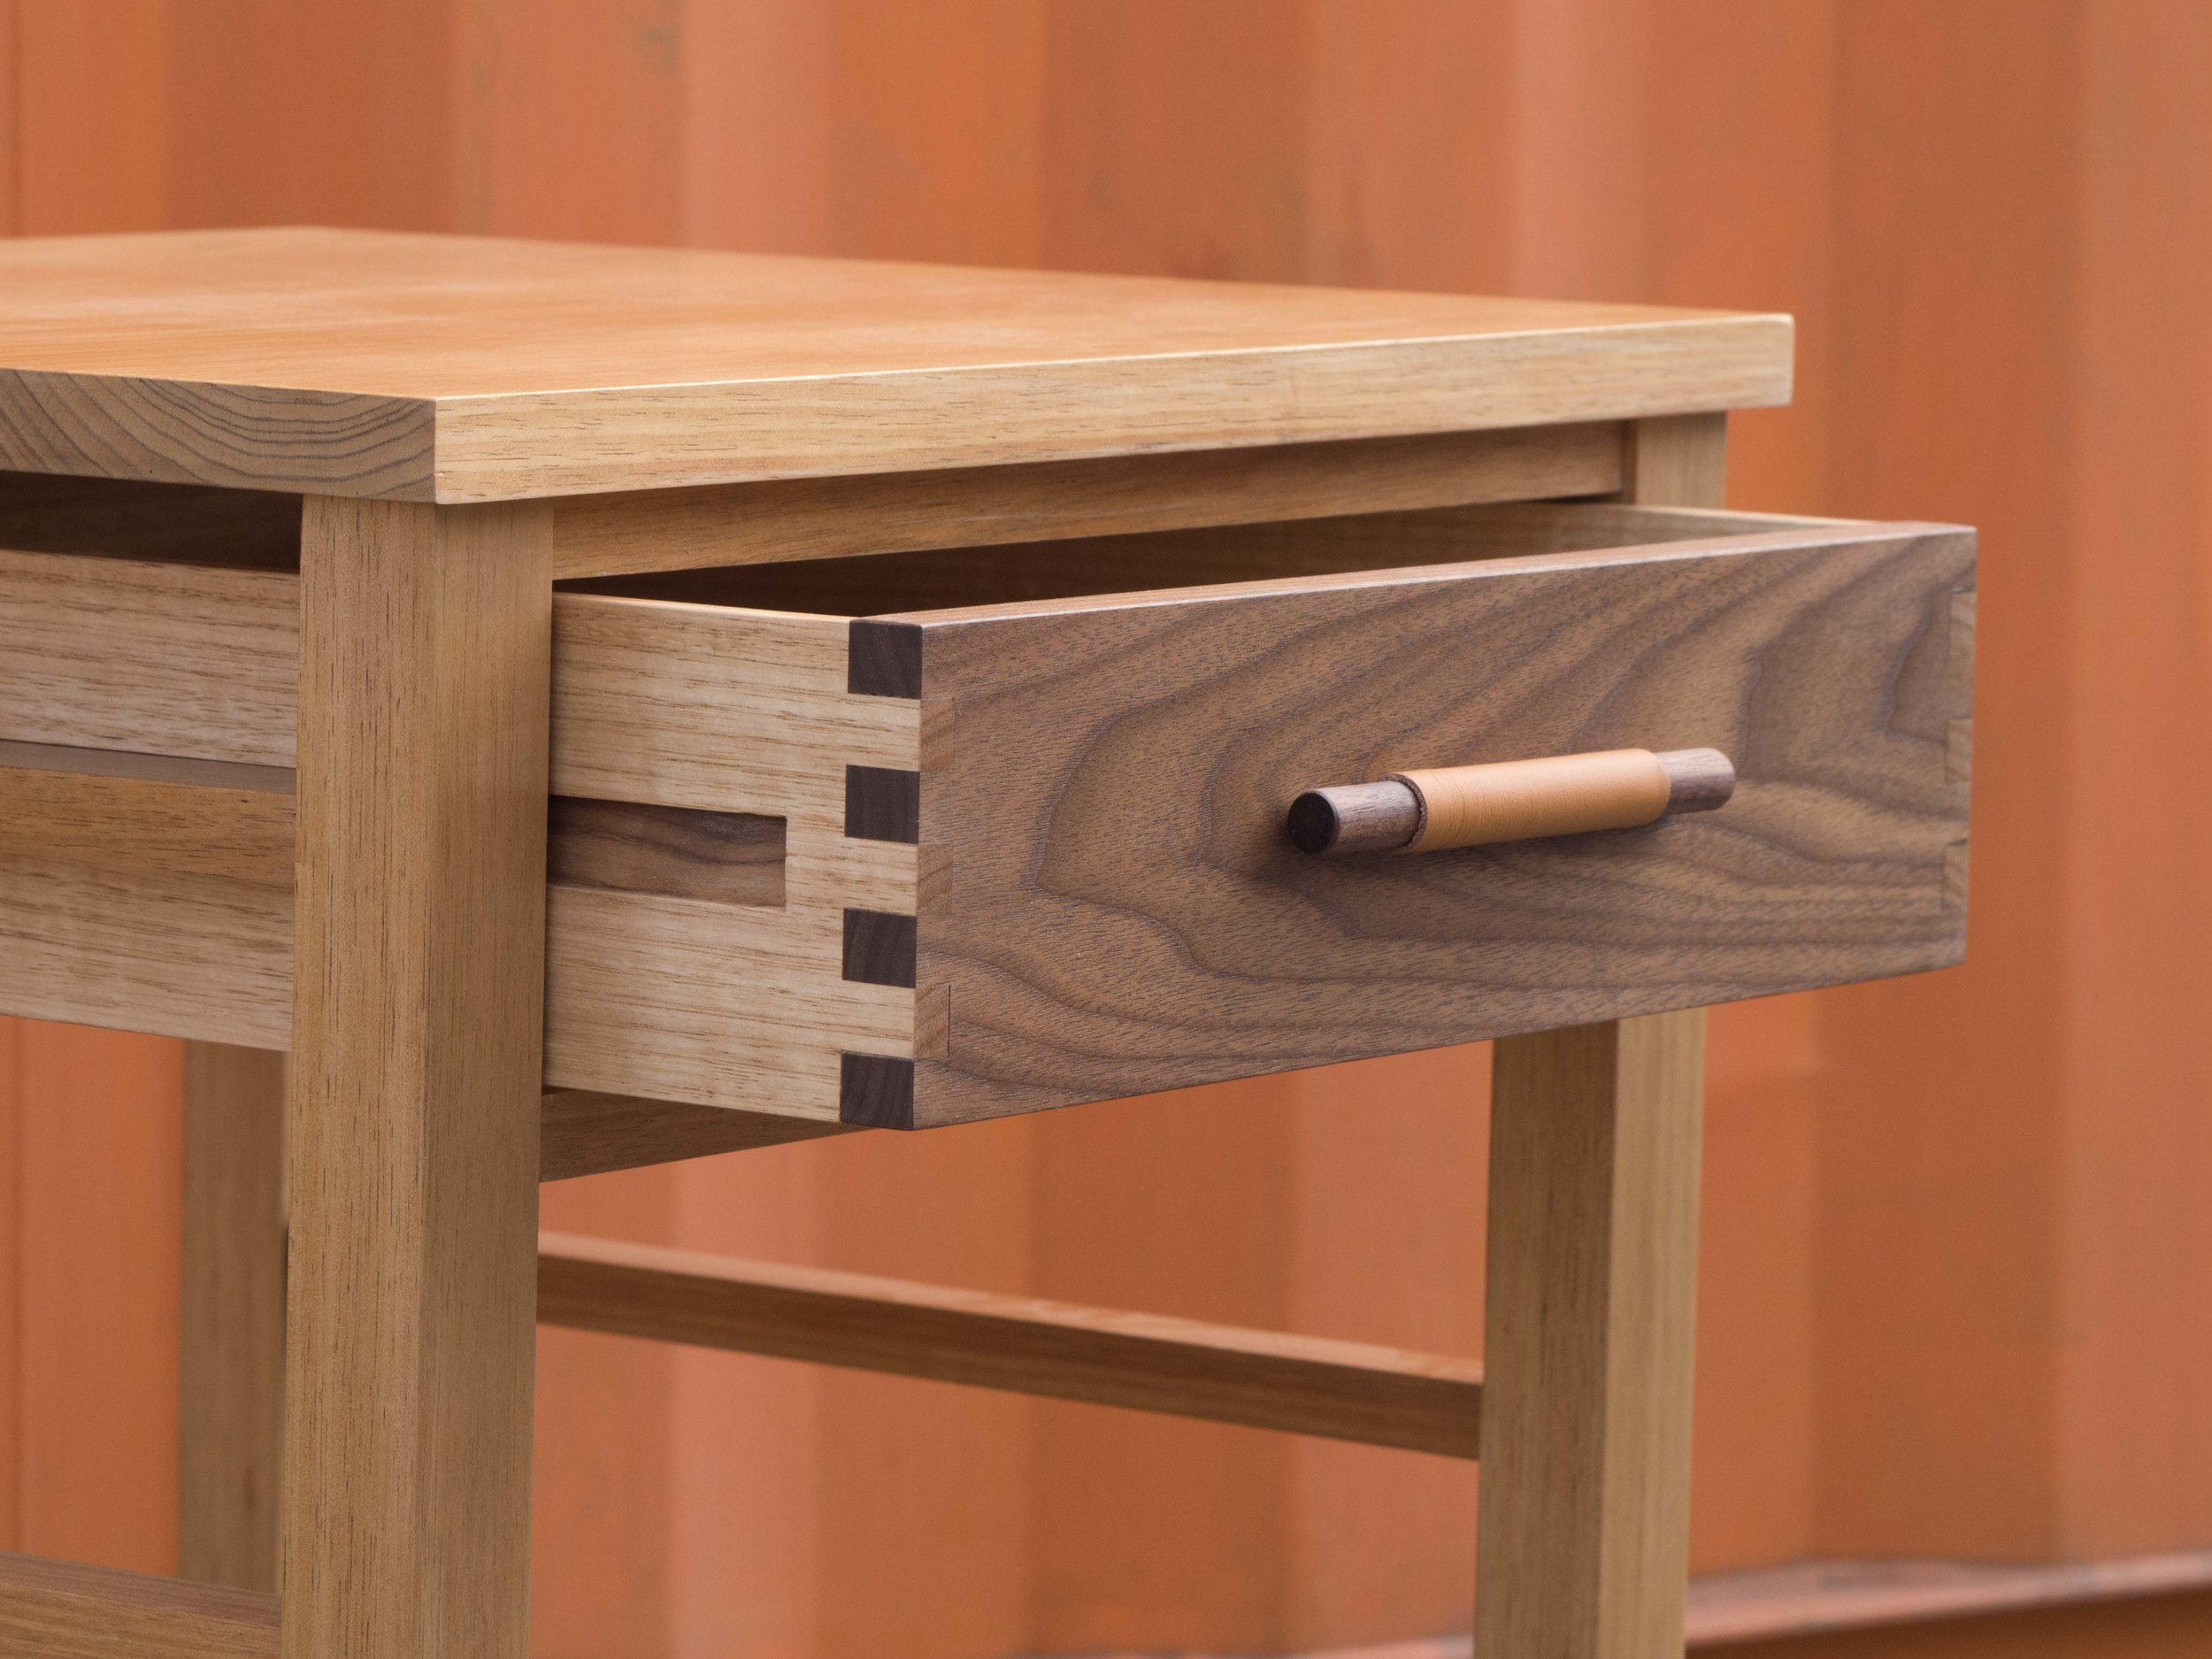 1 of 2 bedside cabinets made by Matthew. Tassie Blackwood, Walnut, Tassie Oak and Leather.